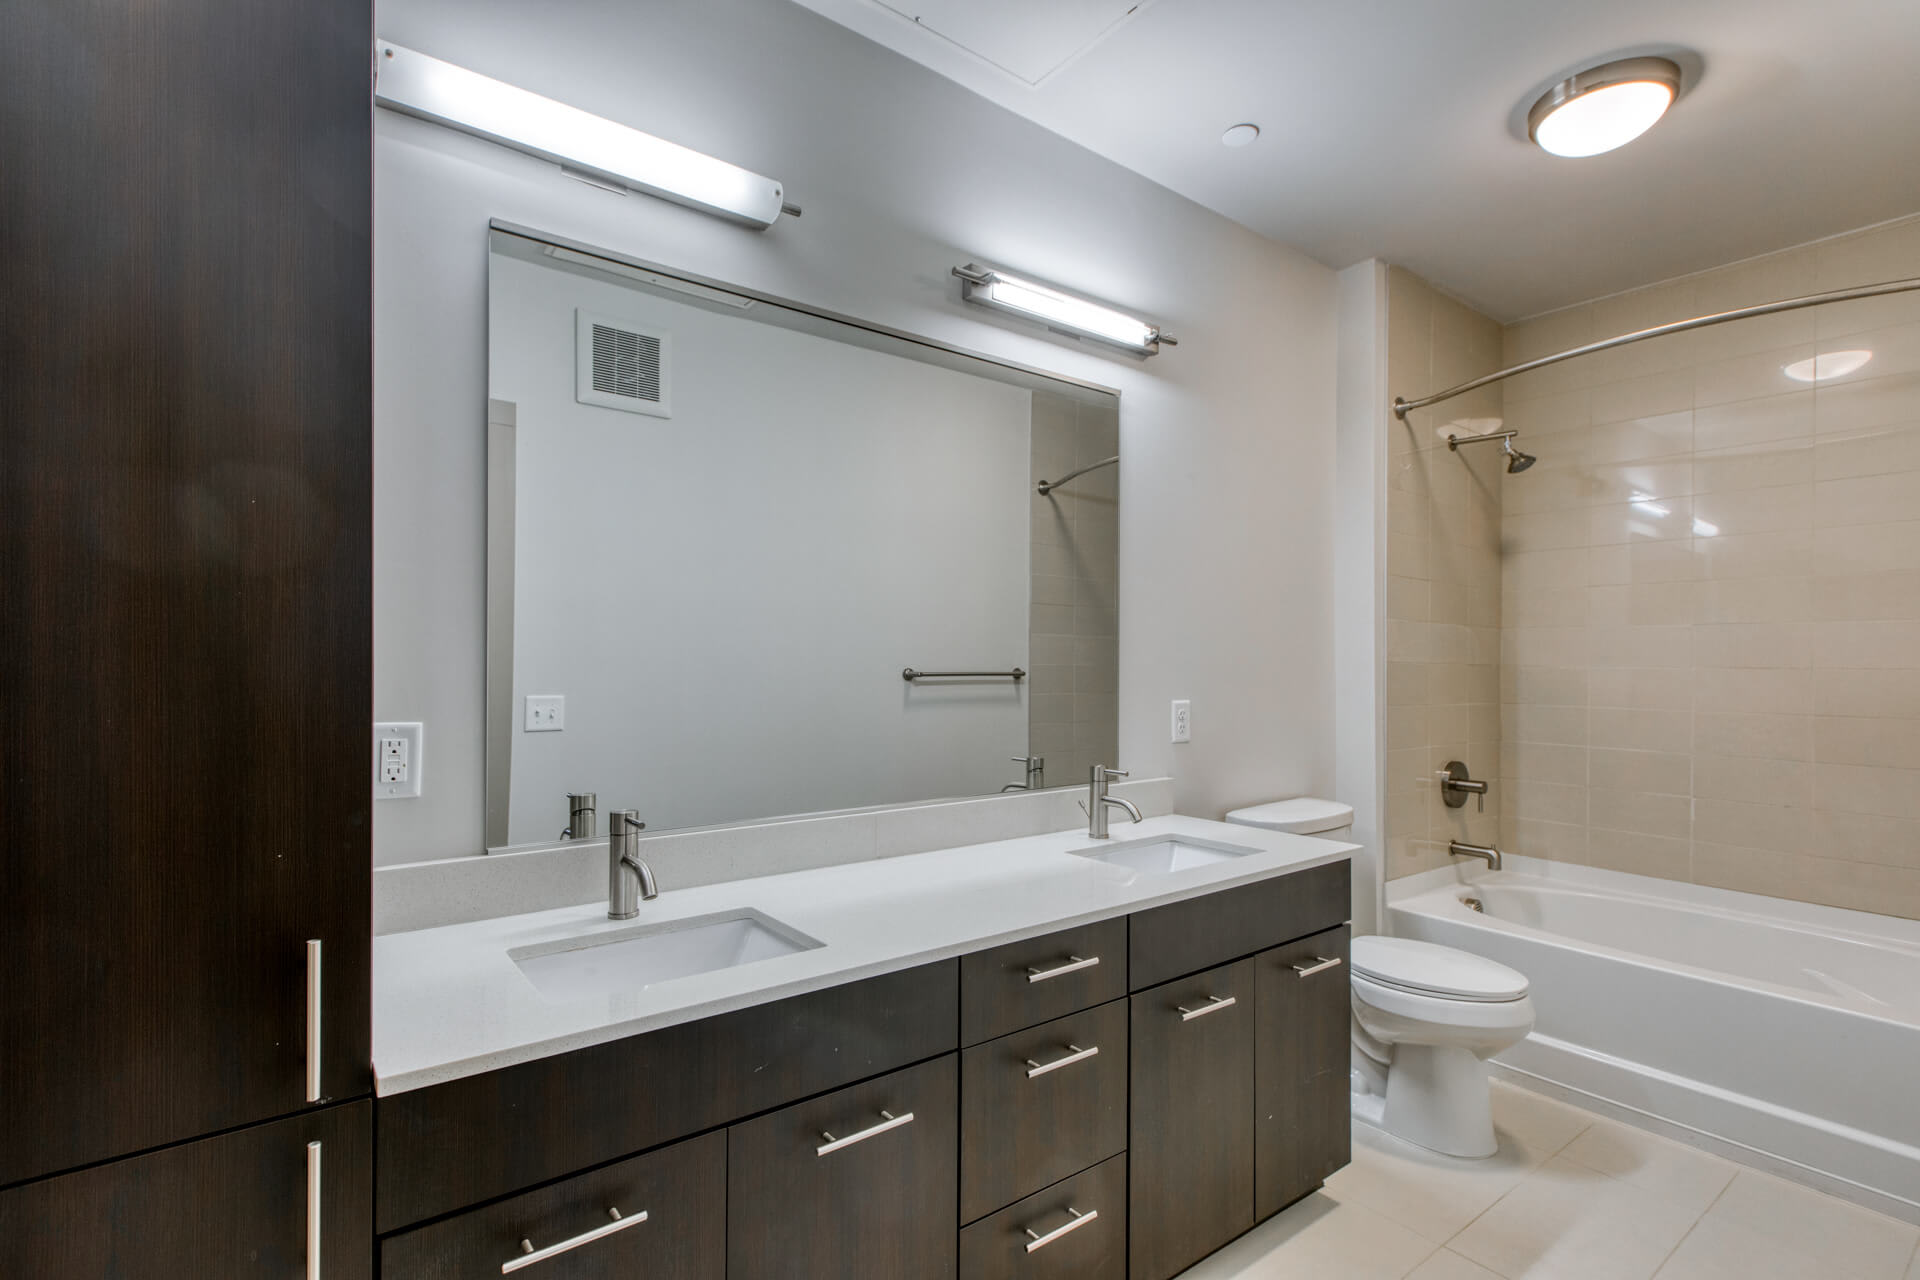 Double vanities in master bedroom at Centric LoHi by Windsor, Denver, Colorado